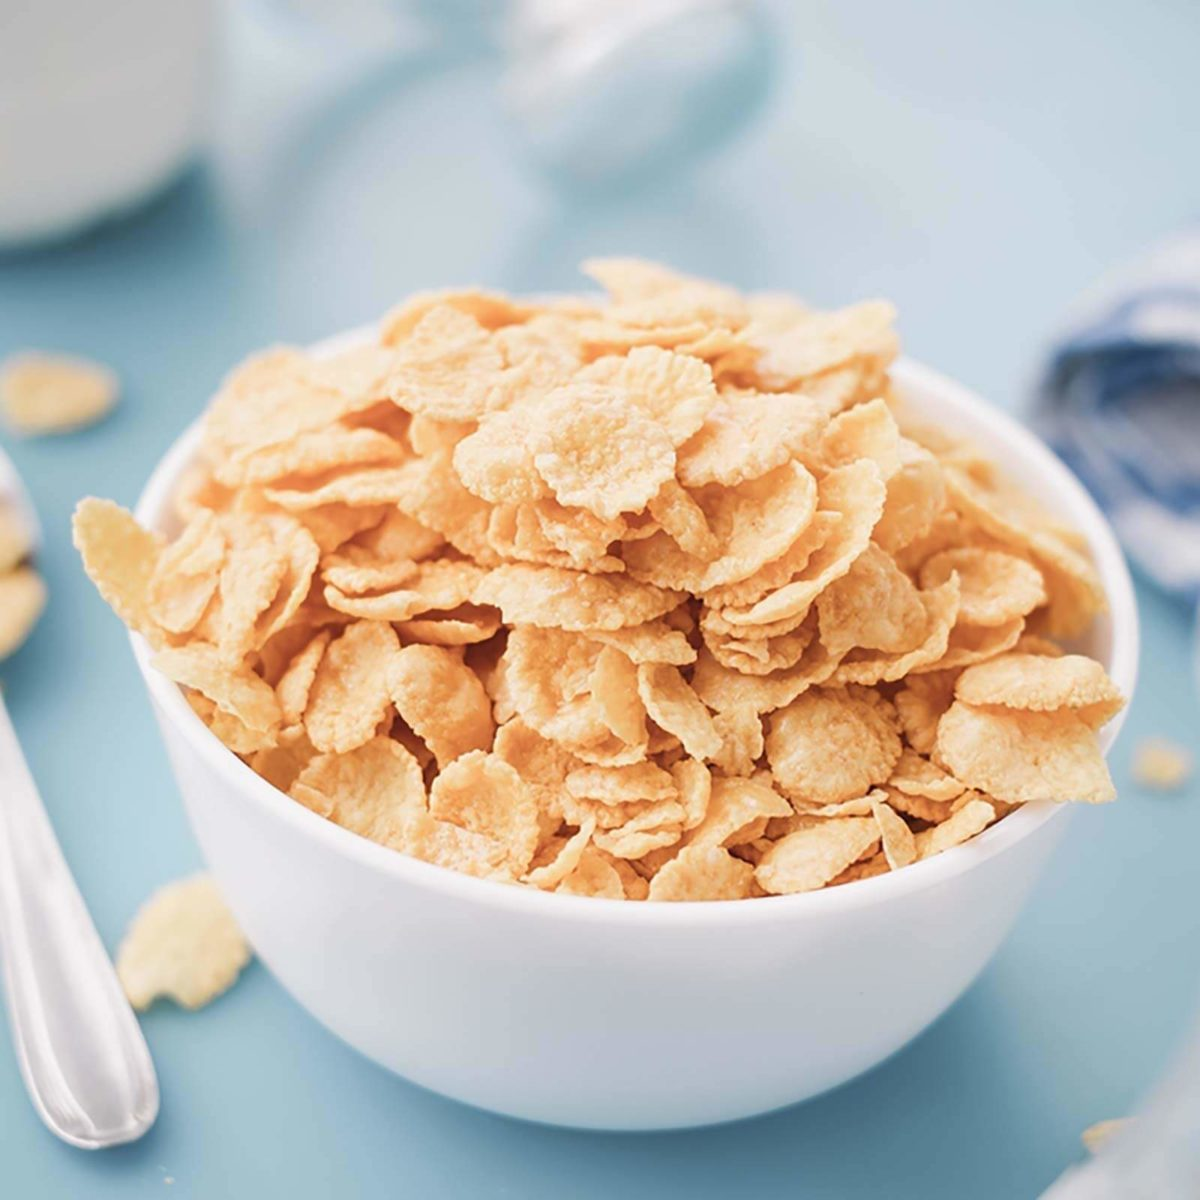 Best 15 Breakfast Foods You Really Need to Stop Eating